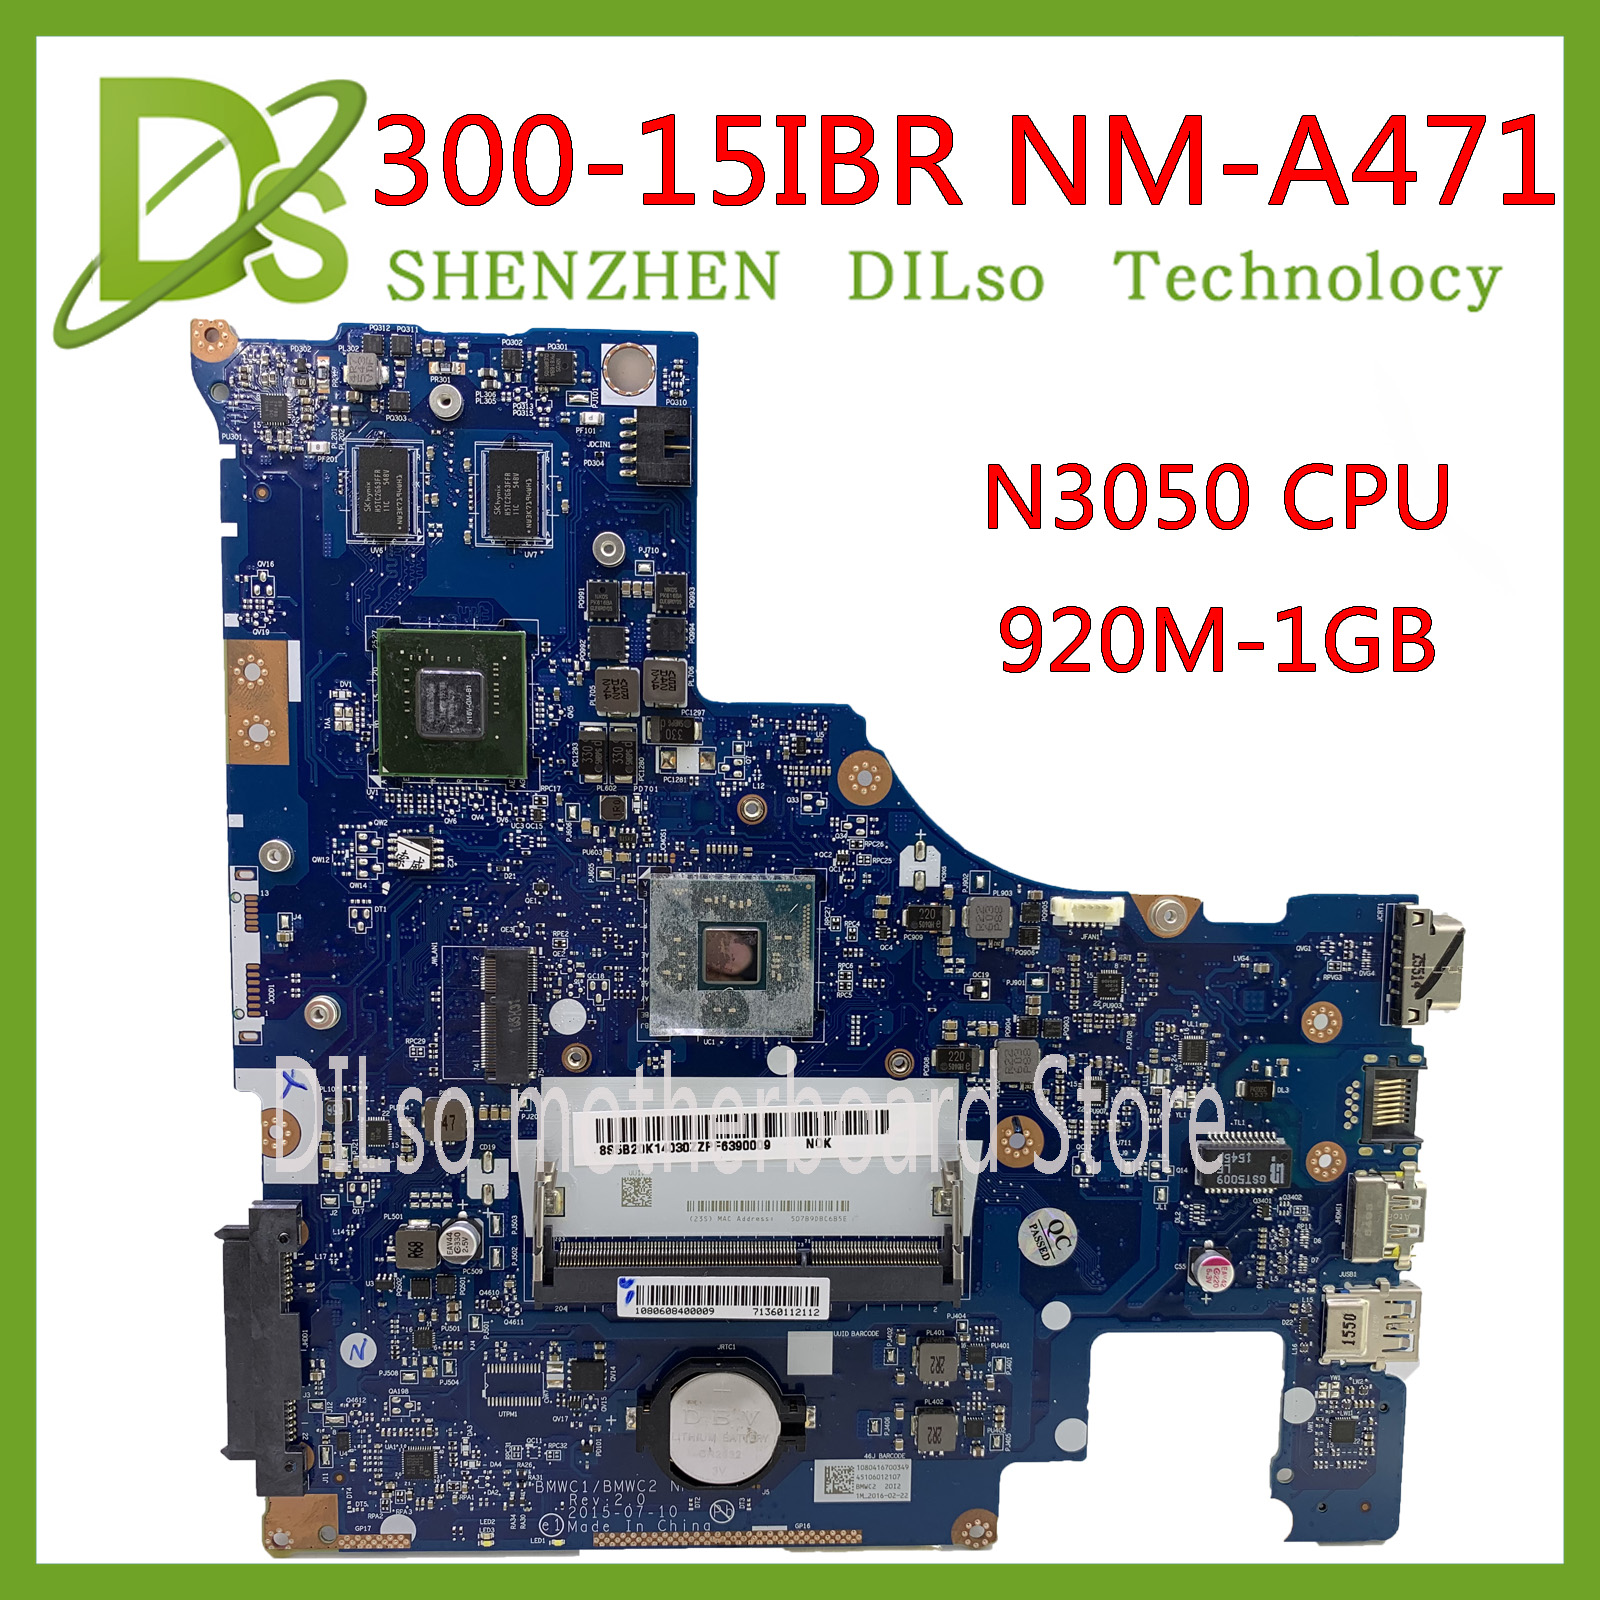 KEFU NM-A471 Motherboard FOR LENOVO 300-15IBR Laptop motherboard BMWC1/BMWC2 NM-A471 N3050 CPU <font><b>920M</b></font> 1G GPU tested 100% work image